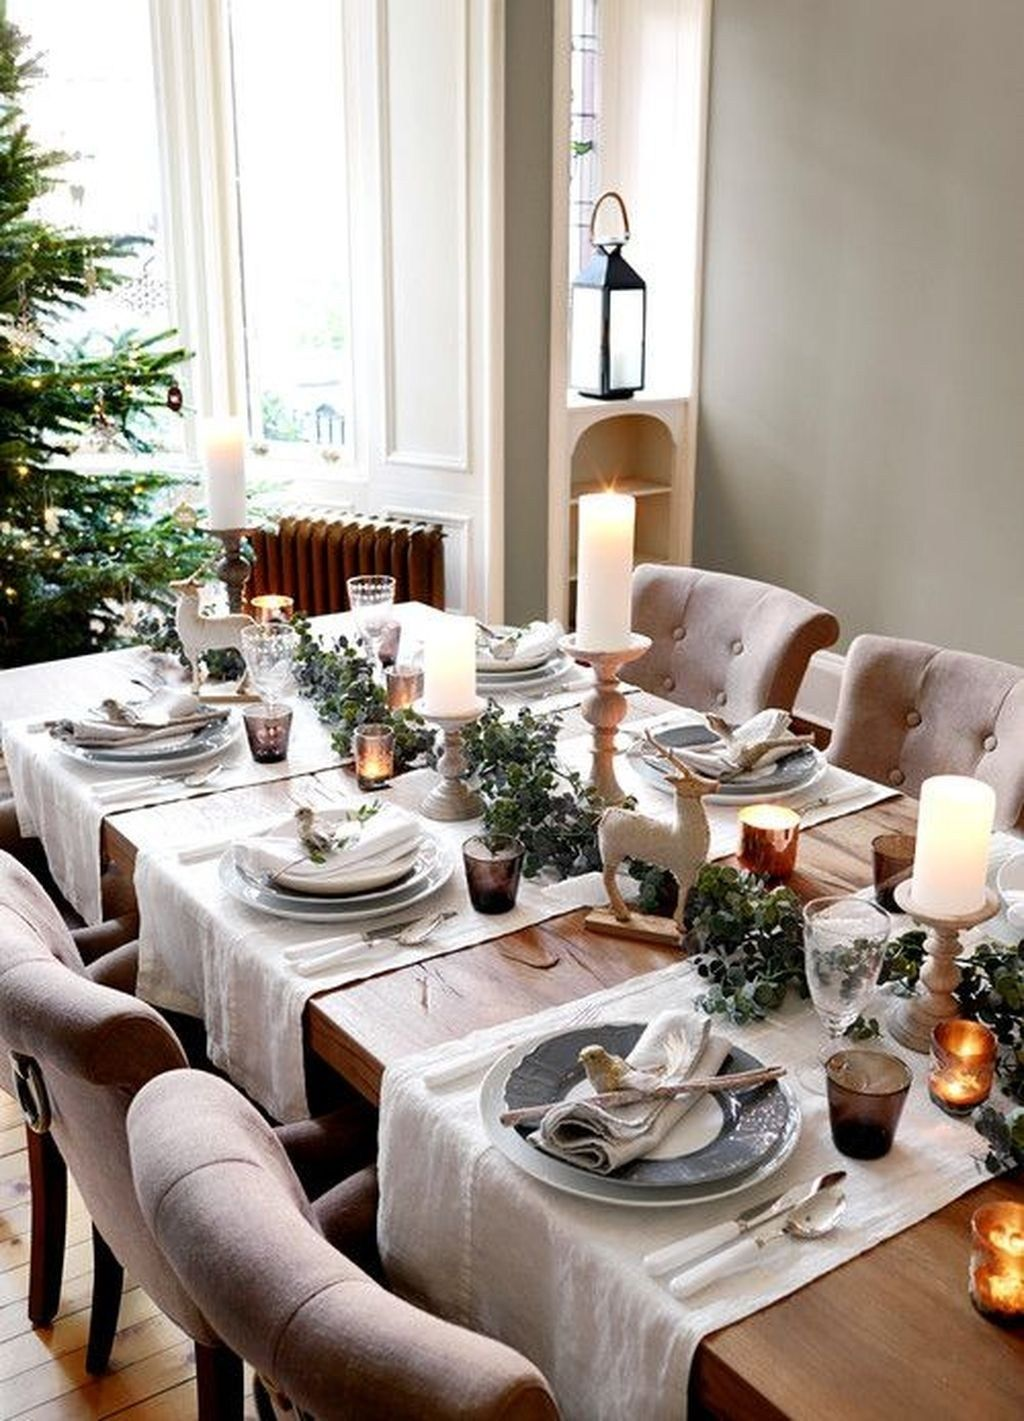 34 Cool Winter Decorations Table Settings Ideas Christmas Dining